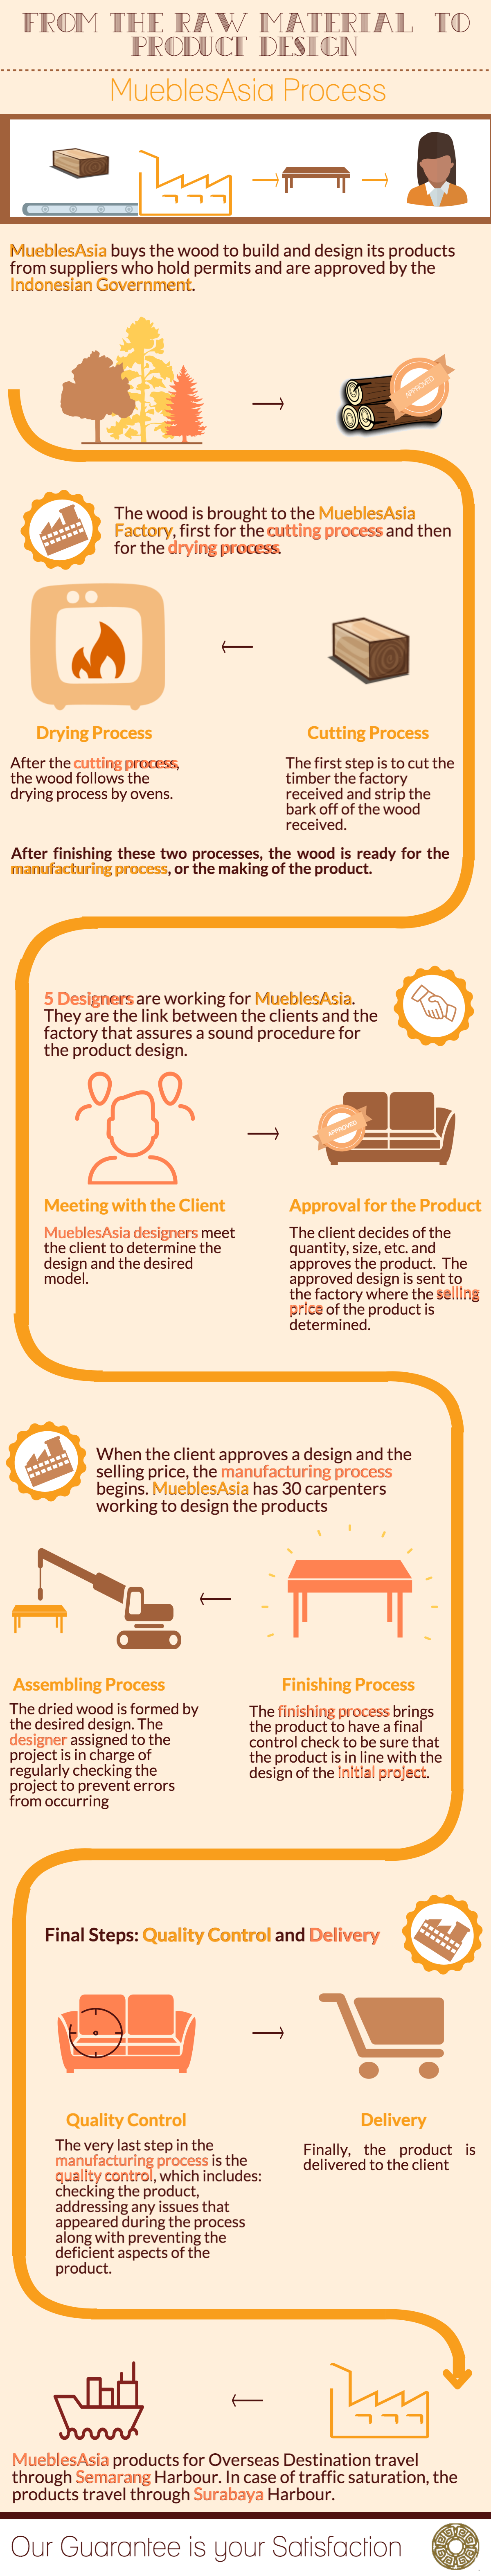 From the Raw Material to the Product Design